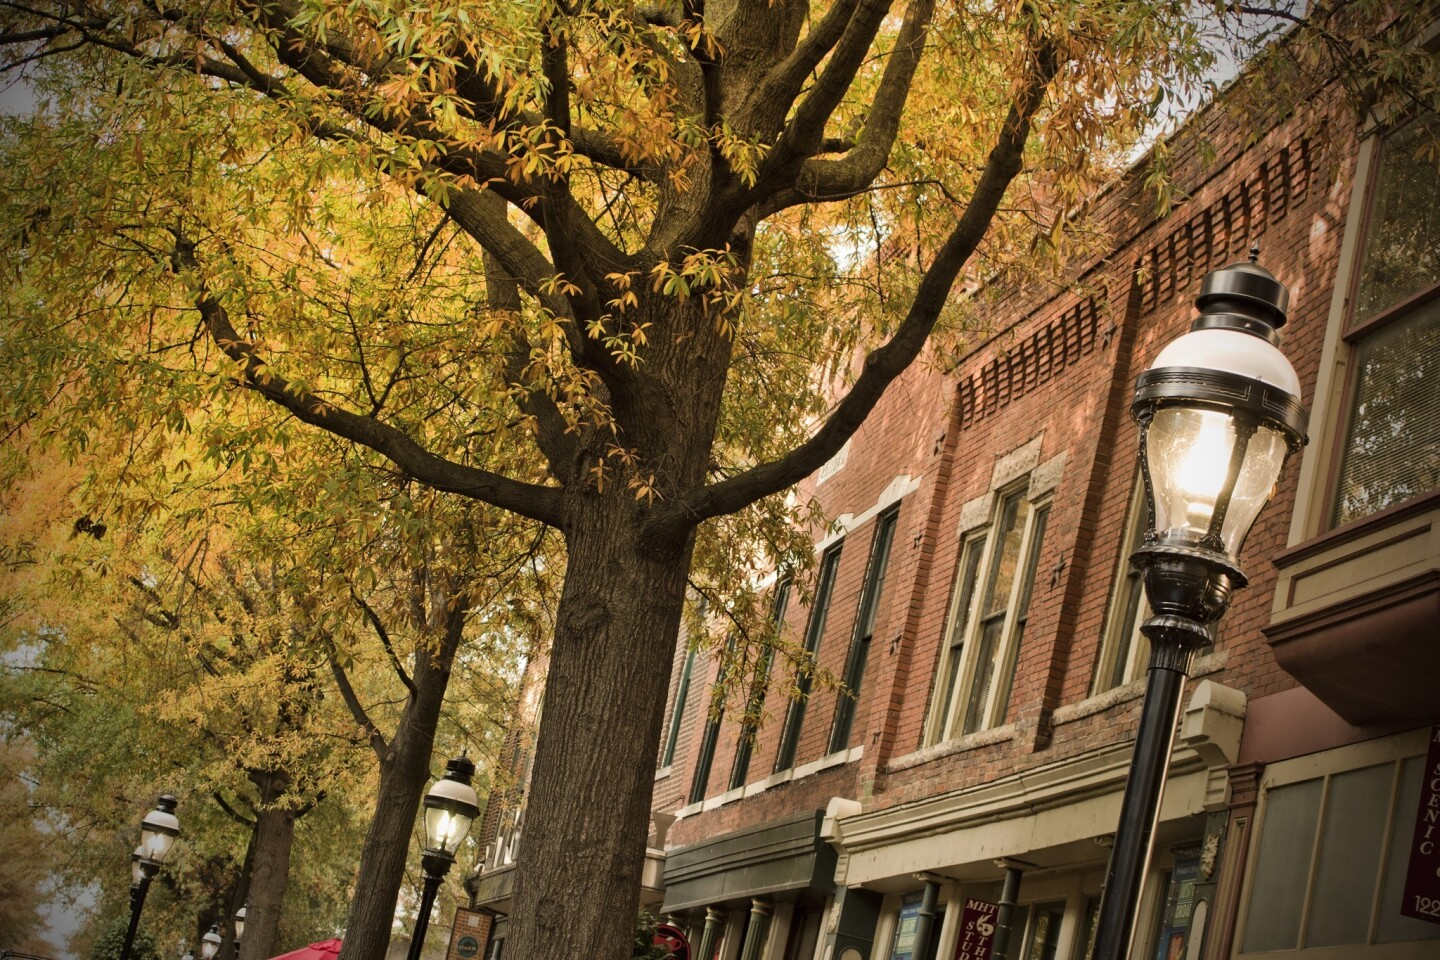 The historic district of Paducah, Ky., is a good place to grab a foliage photo and enjoy a stroll.